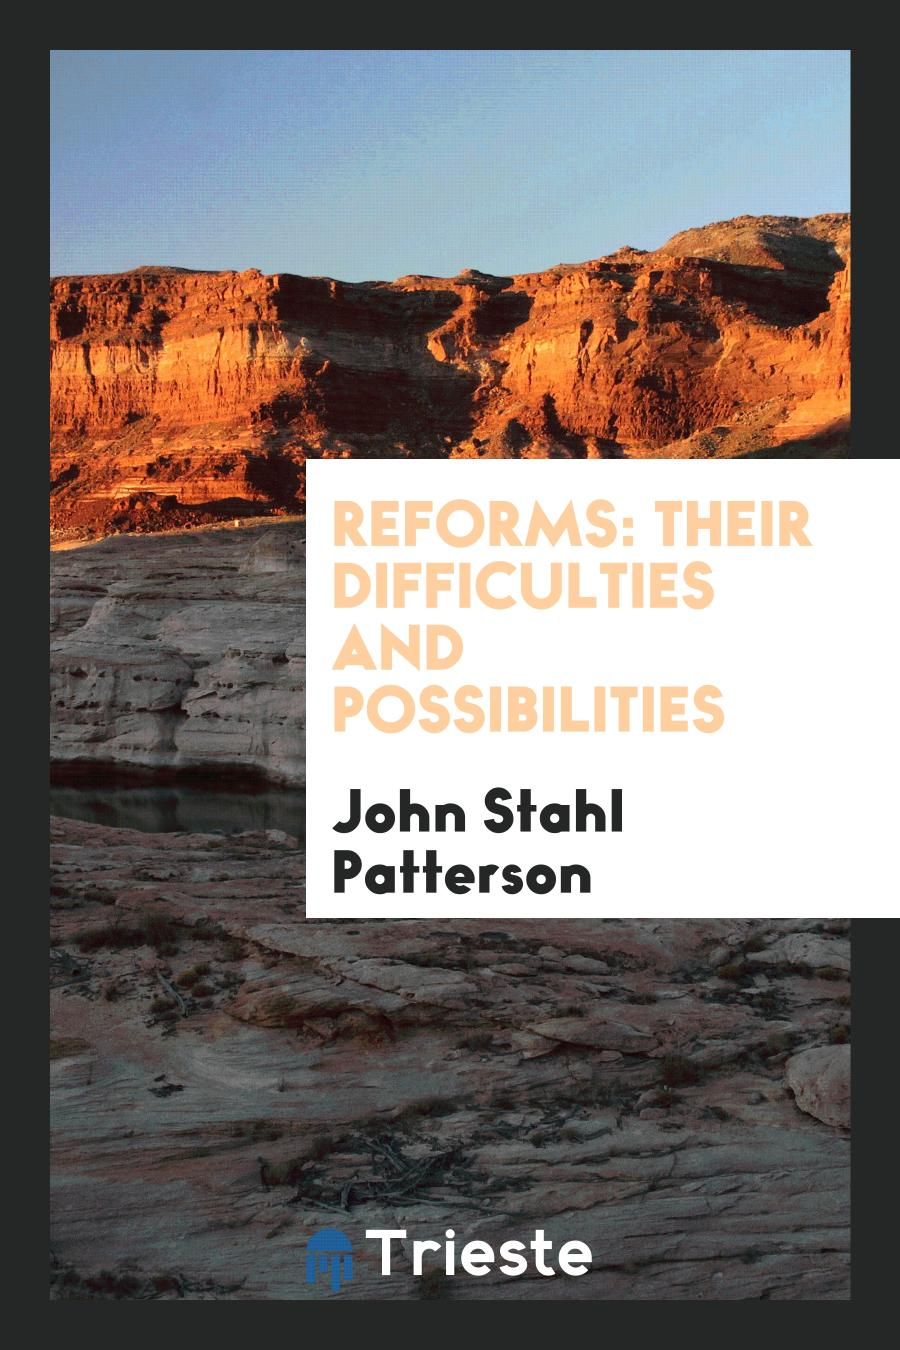 Reforms: Their Difficulties and Possibilities